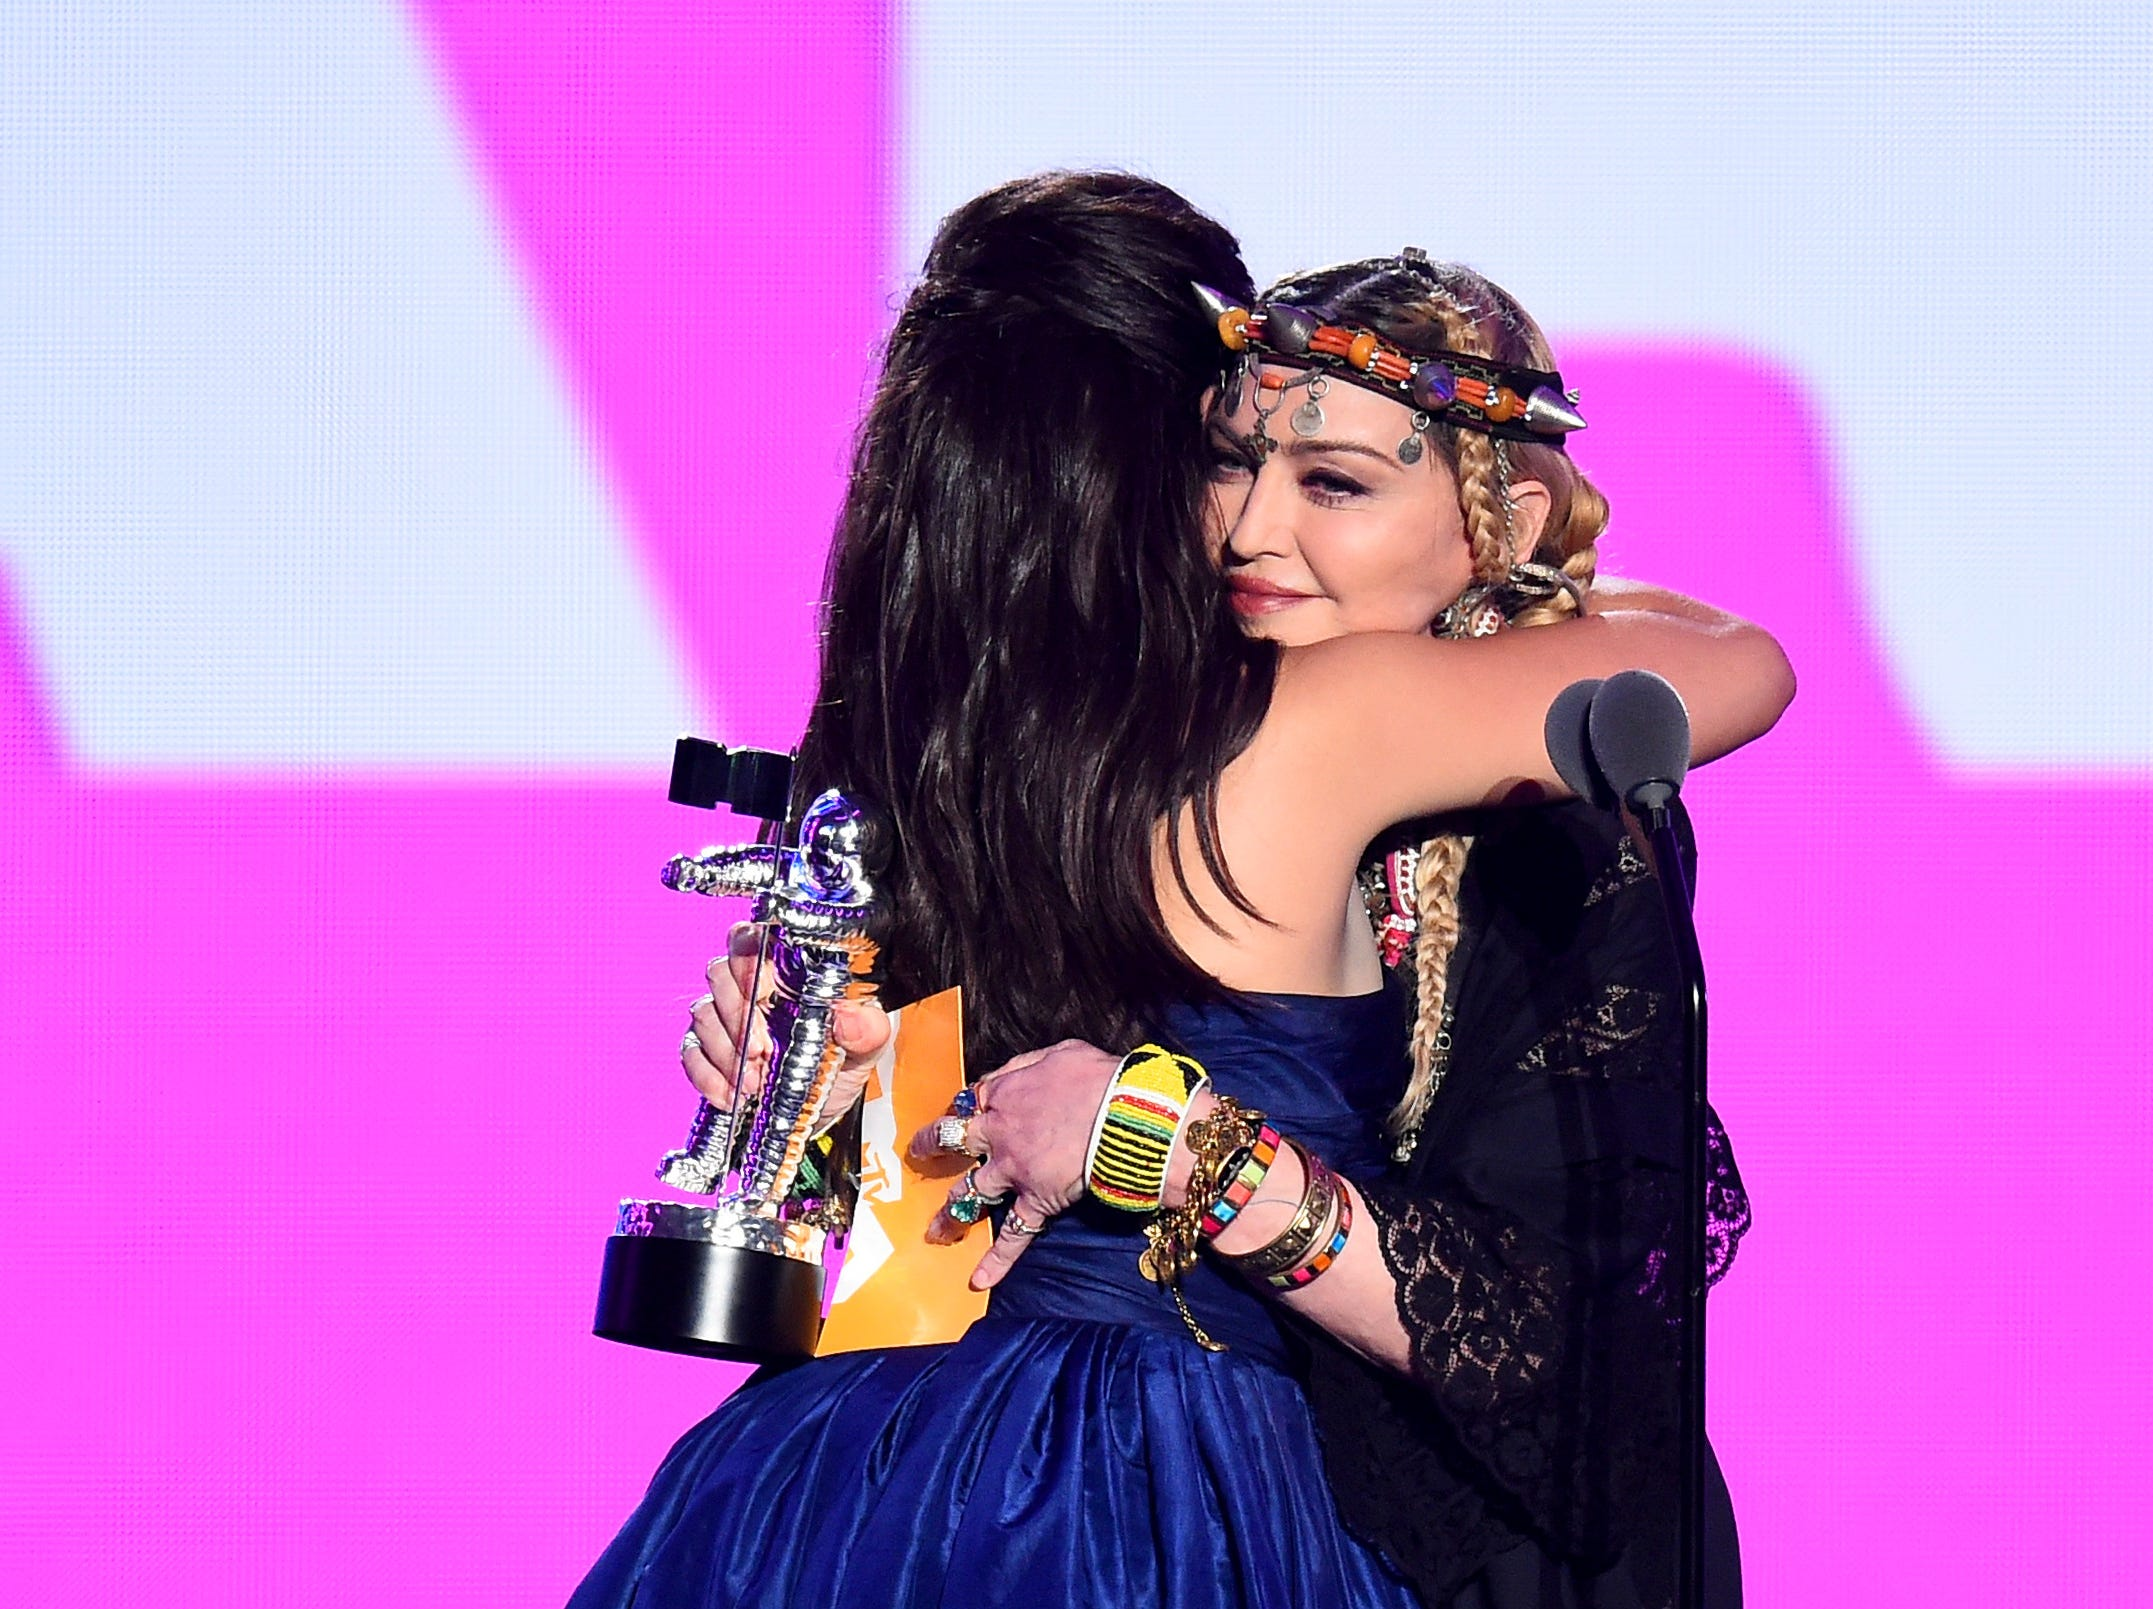 Madonna presents the Video of the Year award to Camila Cabello onstage.